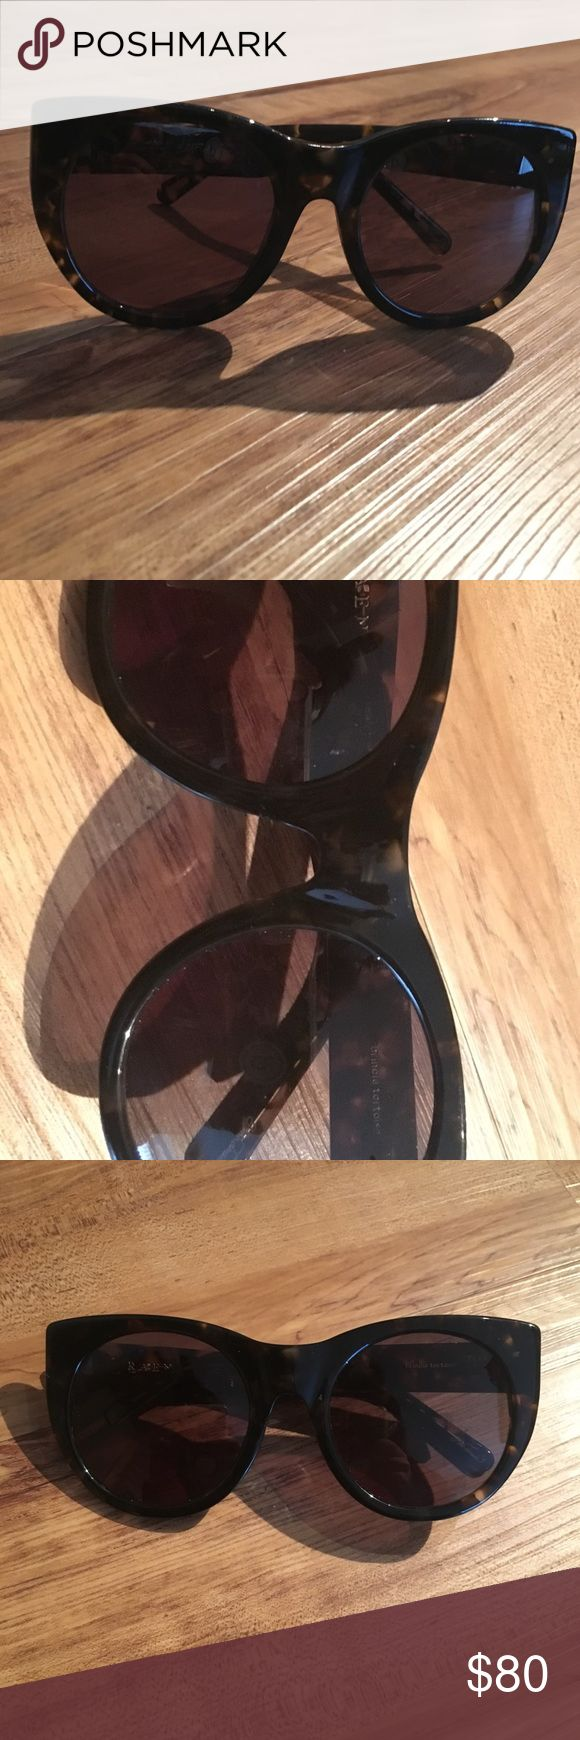 Raen Tortoise Shell Sunglasses Raen Tortoise Shell Glasses. Slight scratched from being next to keys and in my purse. Hardly worn as they are too big for my face, hoping someone can give them the love they deserve :) RAEN Accessories Sunglasses